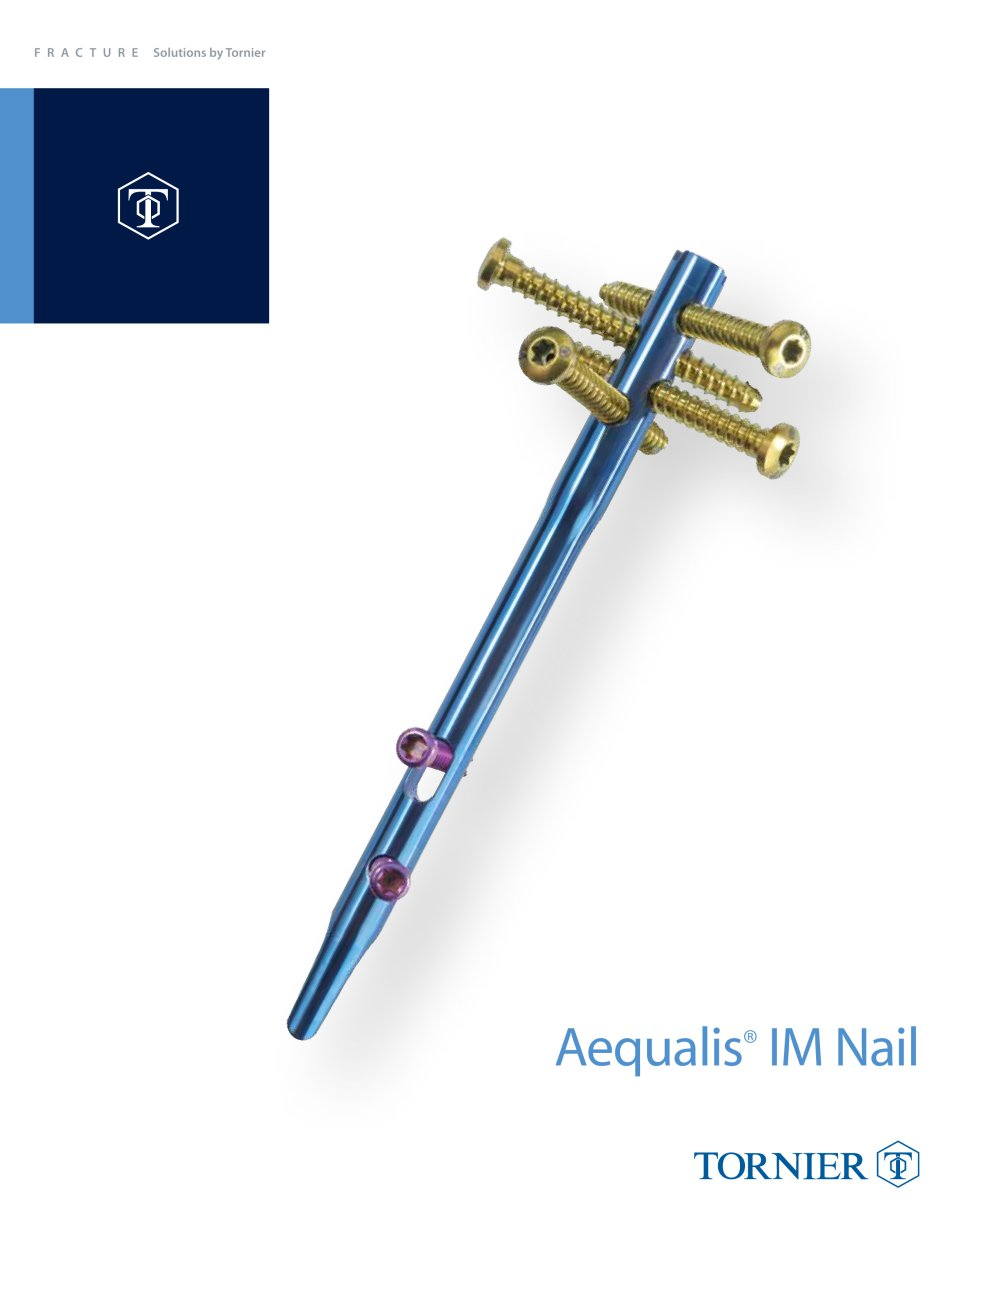 Aequalis IM Nail - Tornier - PDF Catalogue | Technical Documentation